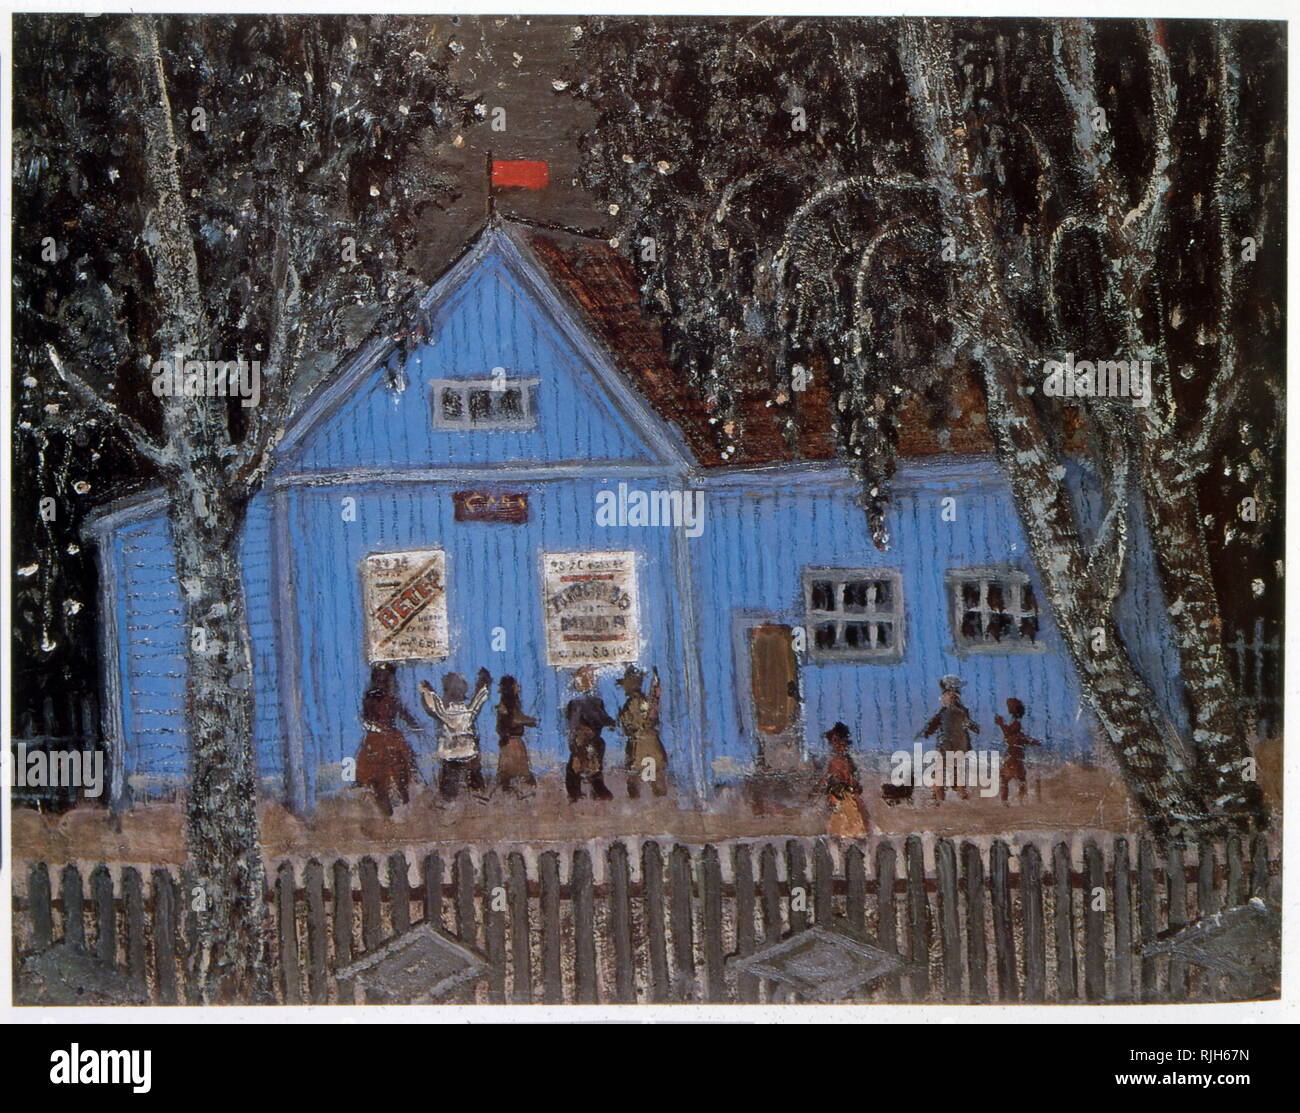 The Cinema, 1964, by Yuri Vasnetsov (1900-1973), Soviet painter and graphic artist. His work was closely linked with the traditions of Russian folk art. Stock Photo